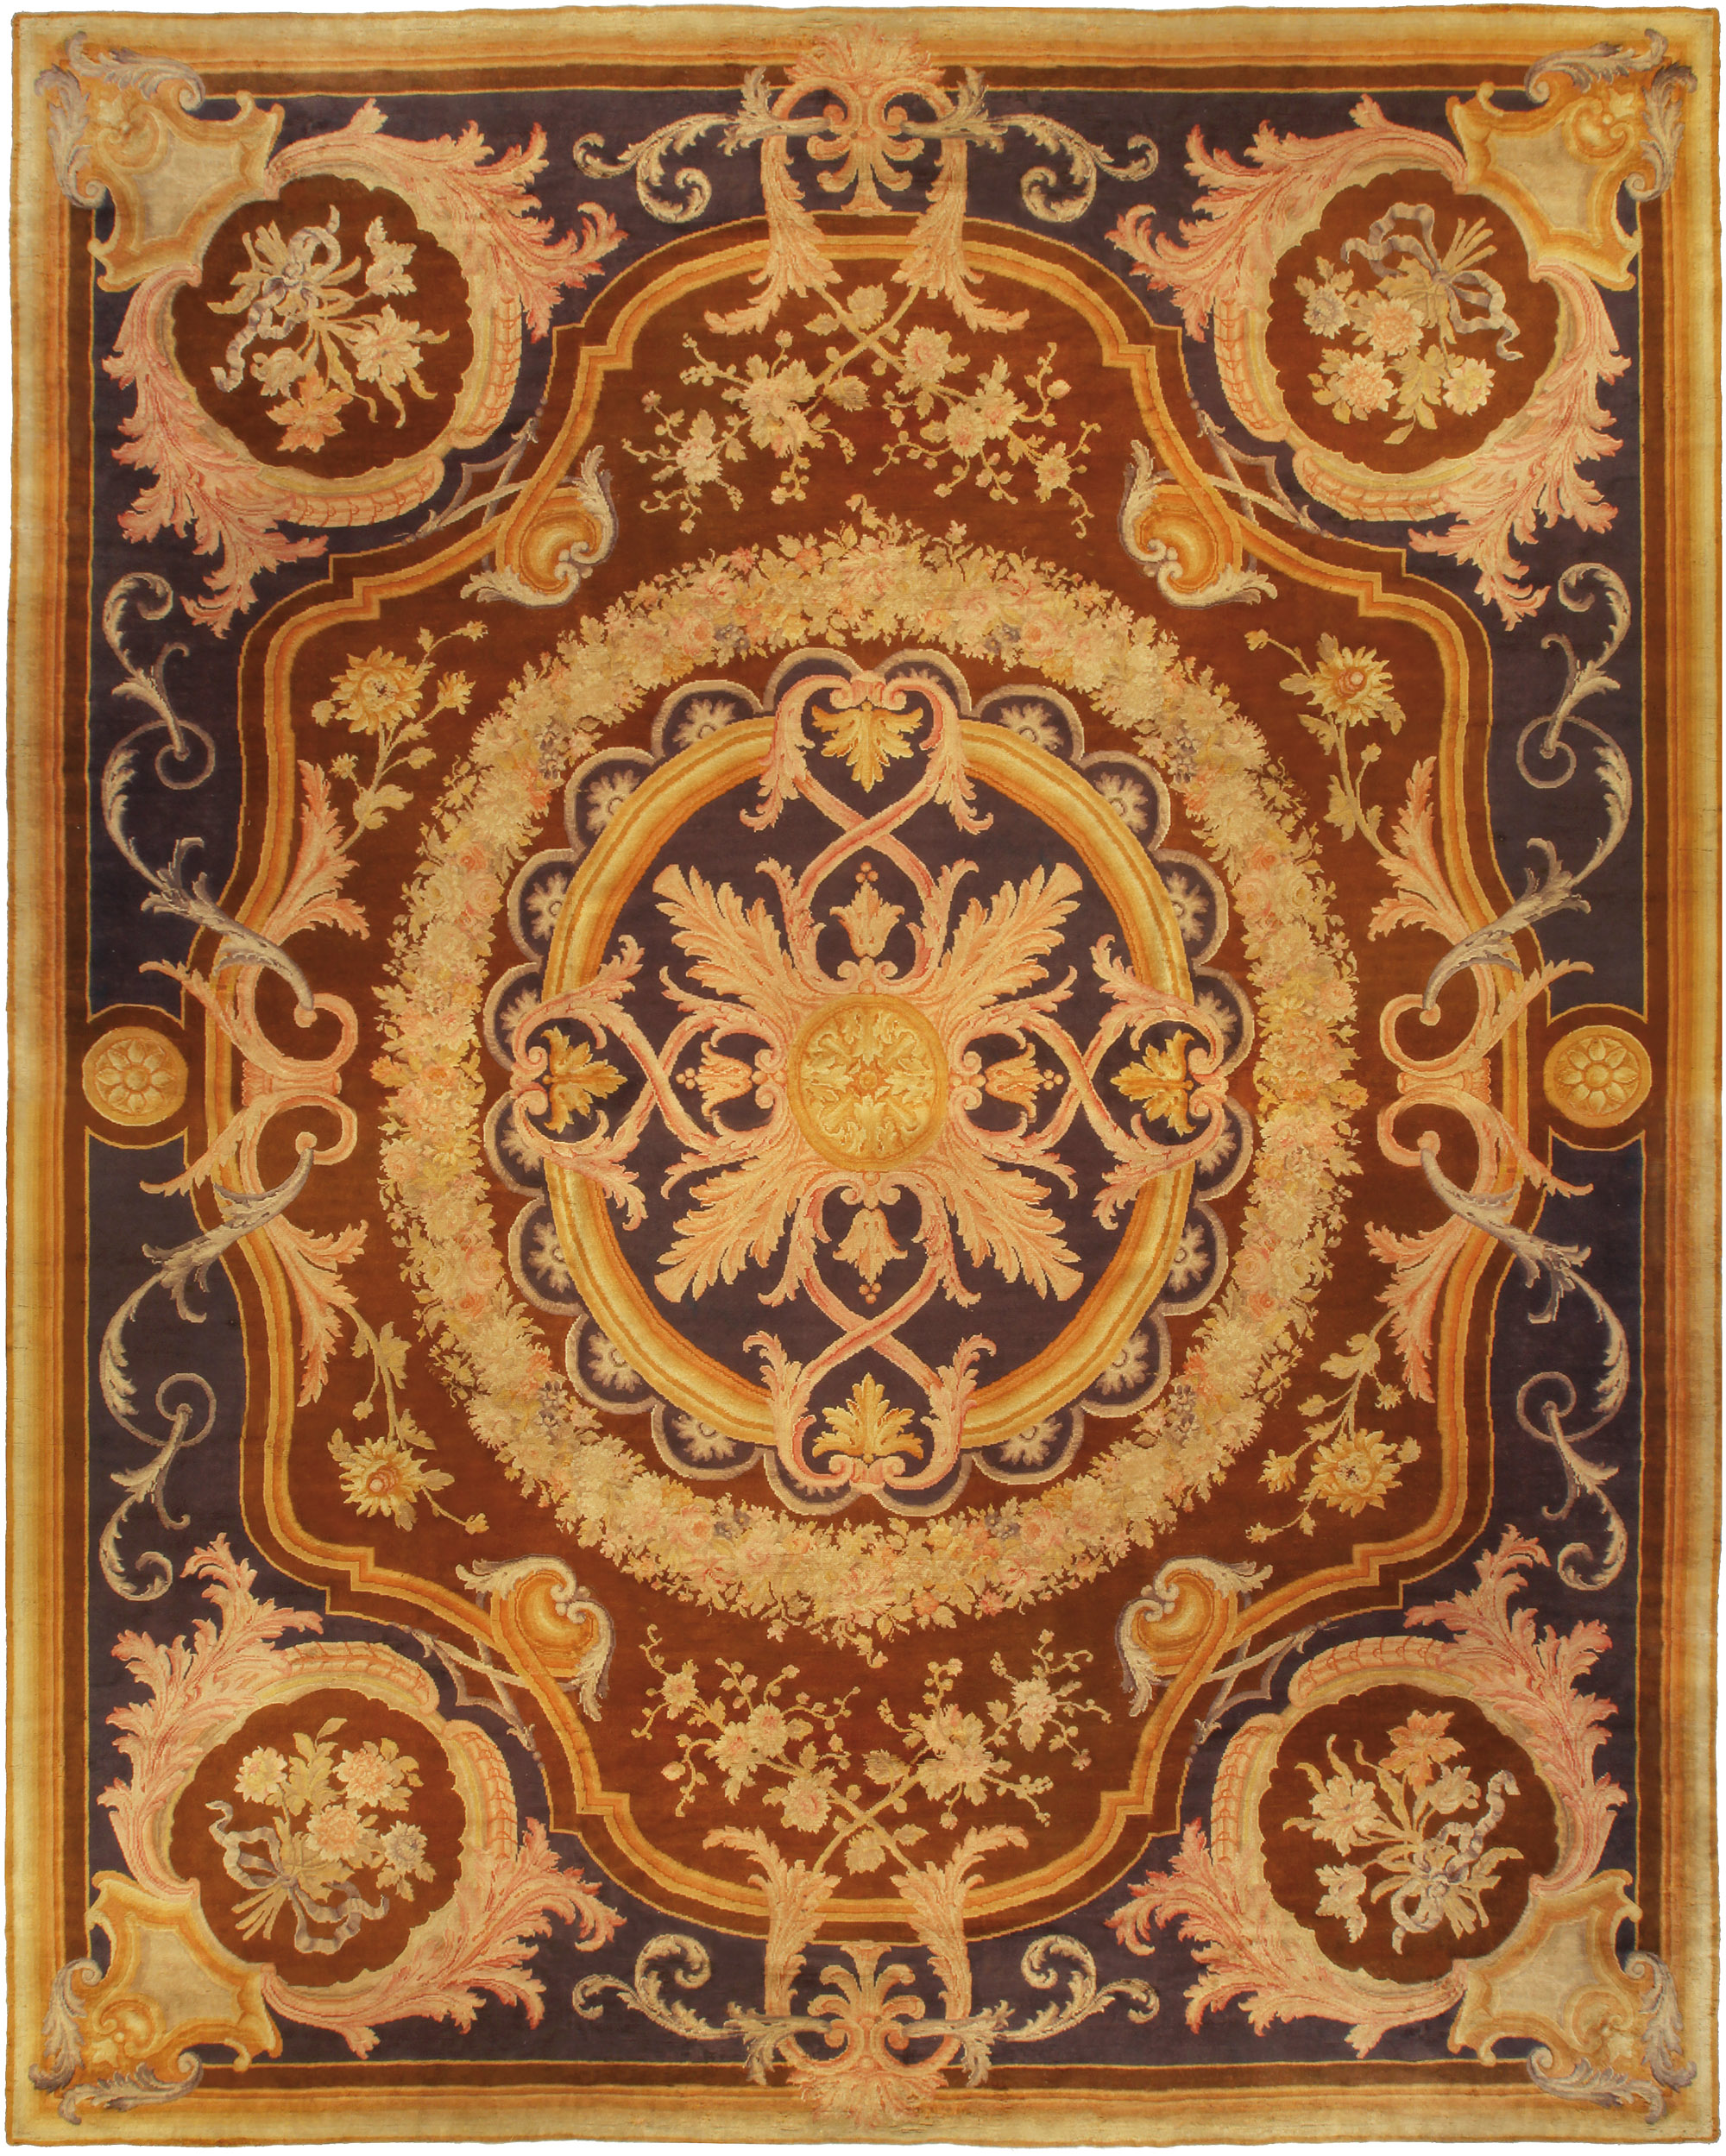 European Rugs Amp Antique Carpets For Sale Lowest Price Nyc